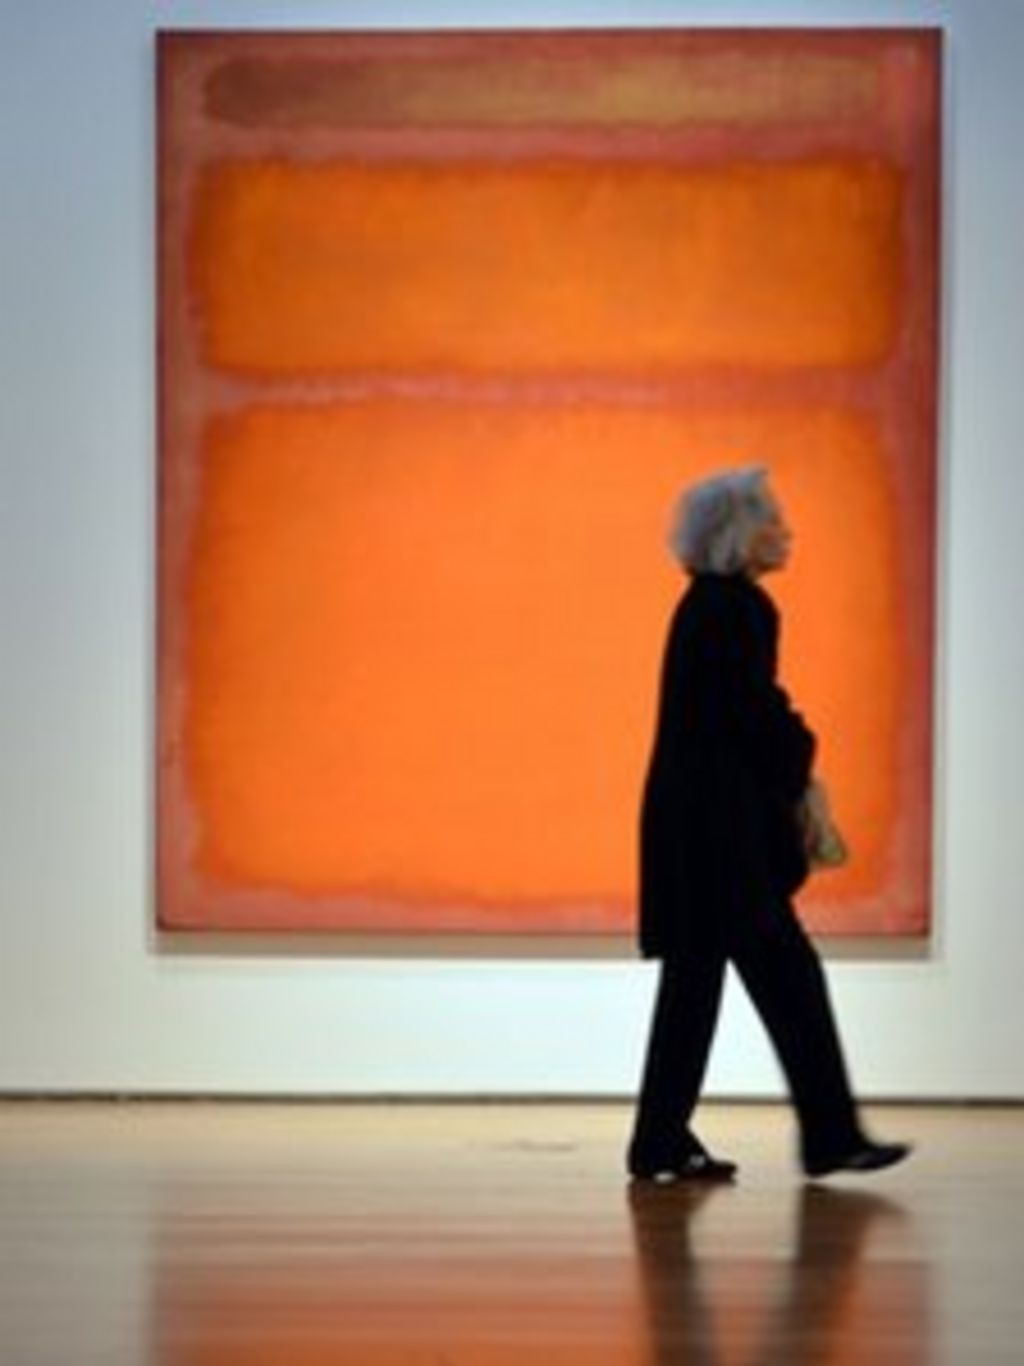 Mark rothko work sold for record at auction bbc news for Best way to sell paintings